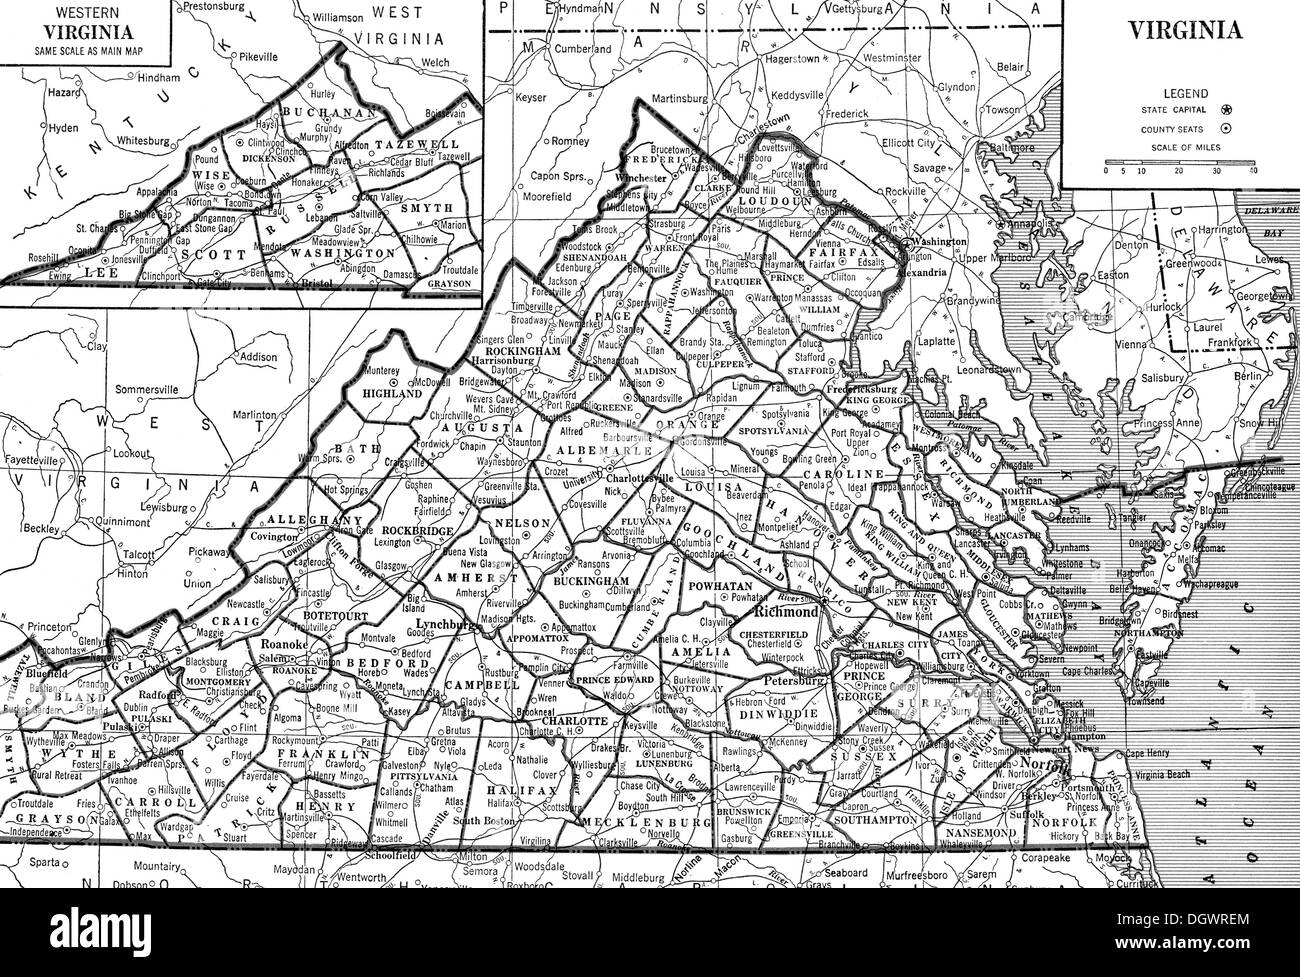 Old Map Of Virginia 1930 S Stock Photo 62032844 Alamy